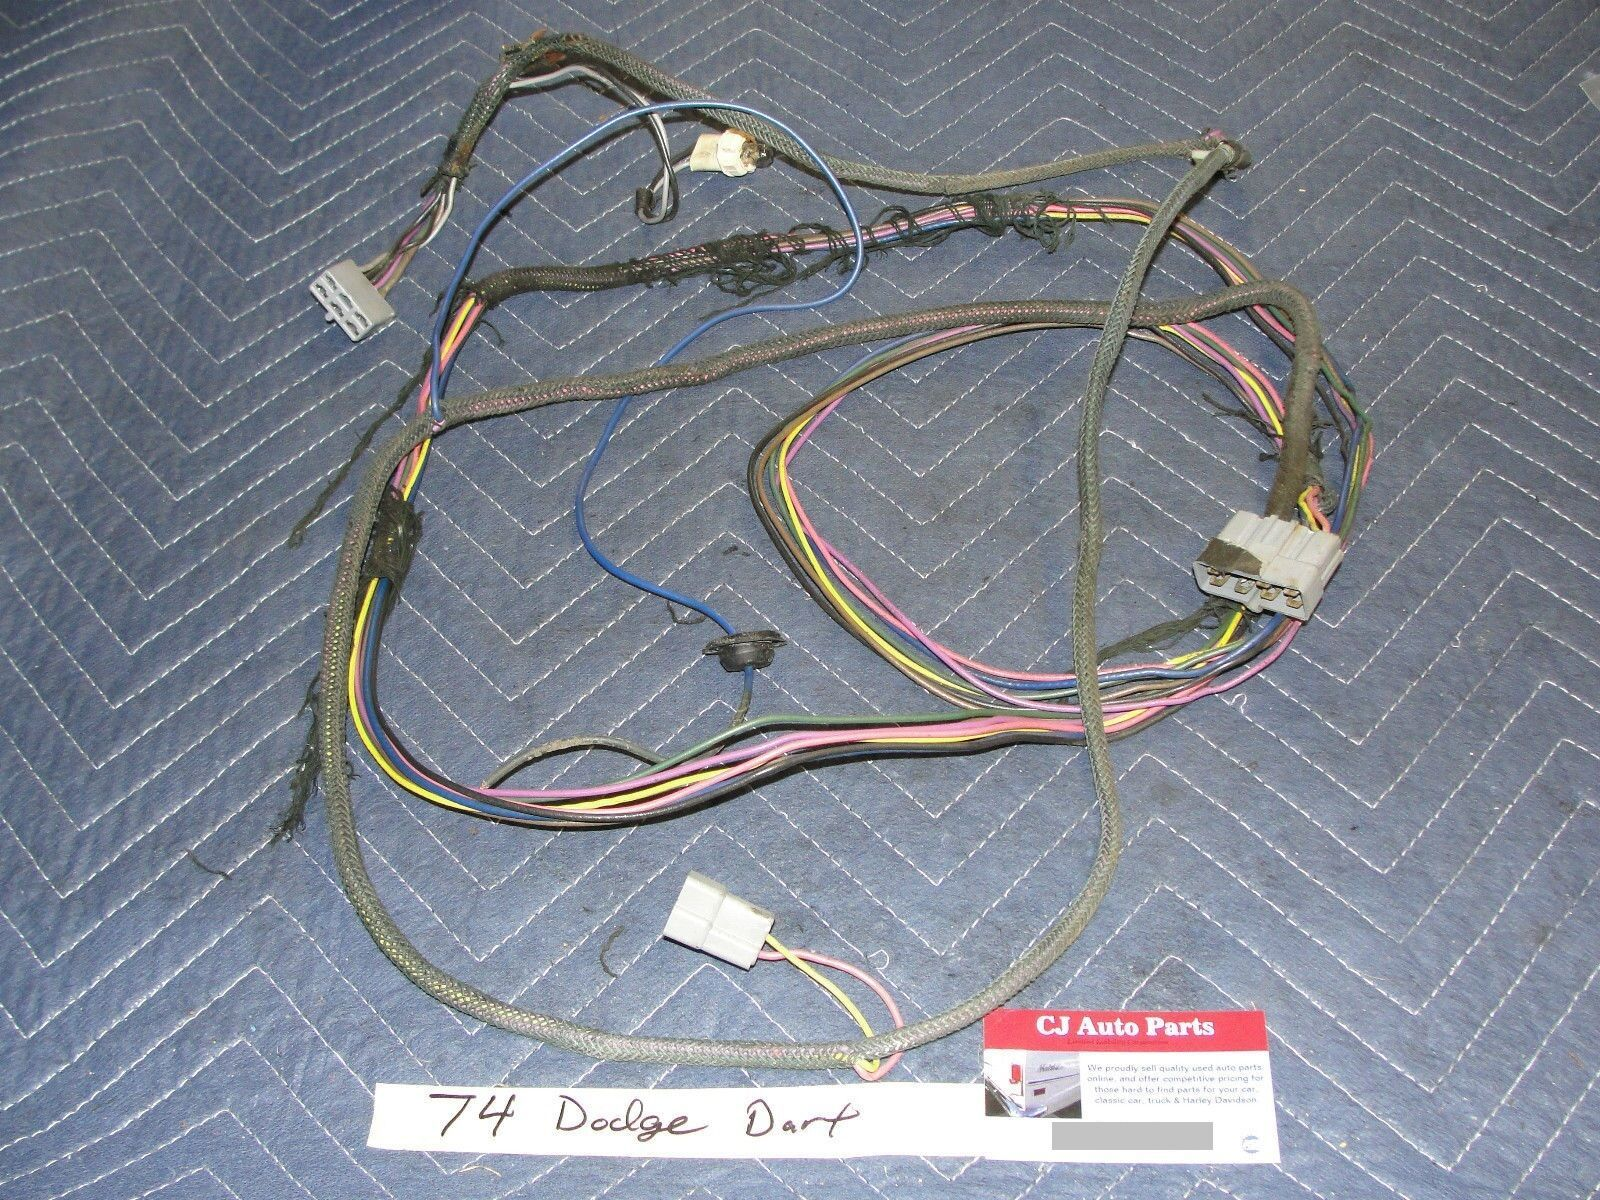 Primary image for OEM 74 Dodge Dart COMPLETE FRONT DASH TO REAR TRUNK WIRE HARNESS & FUEL SENSOR